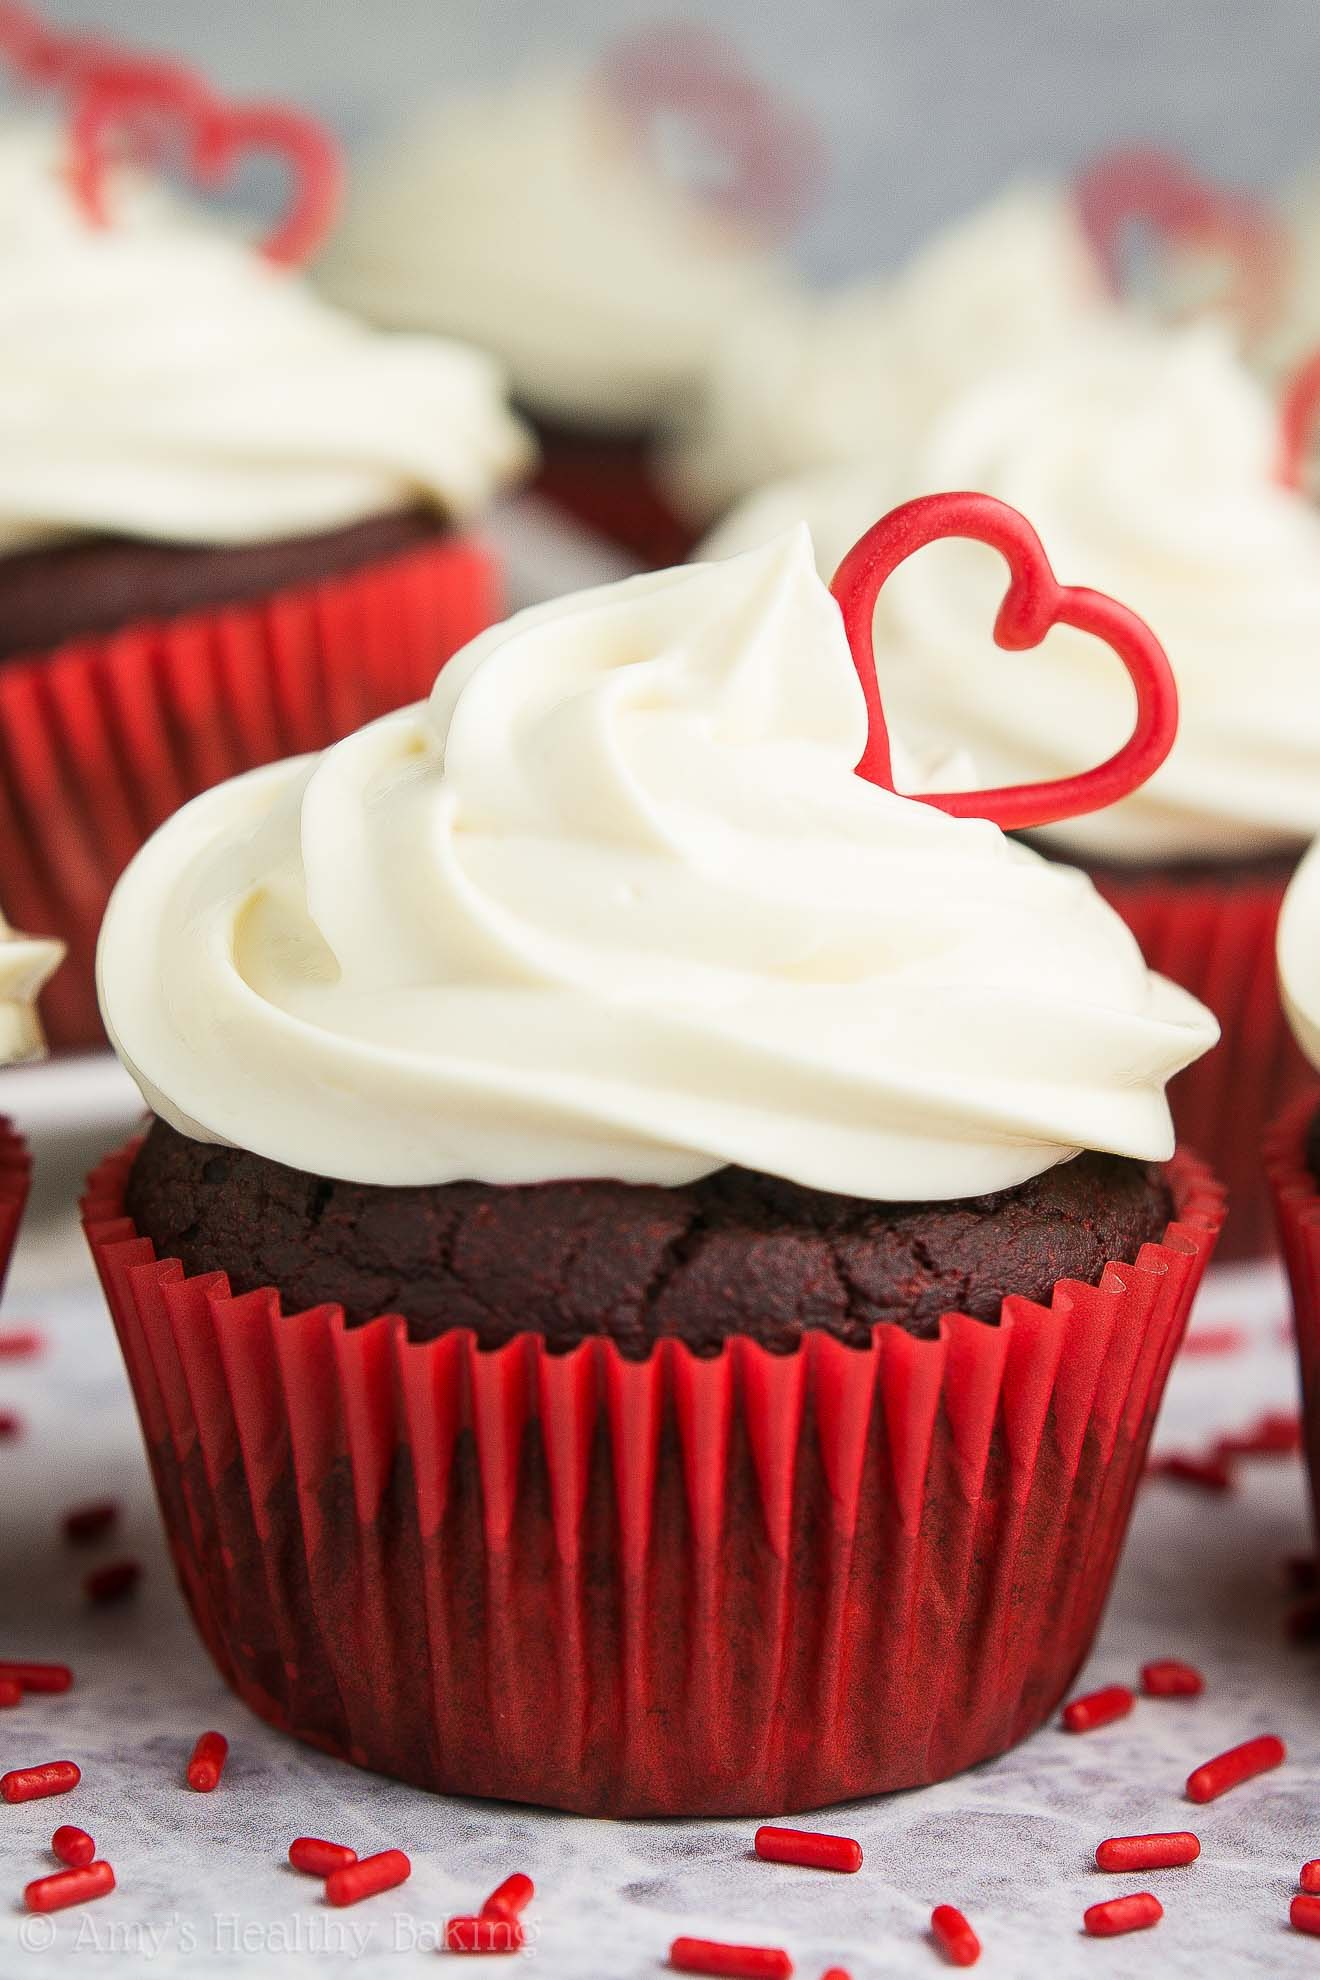 The ULTIMATE Healthy Red Velvet Cupcakes! With cream cheese frosting + red heart decorations!